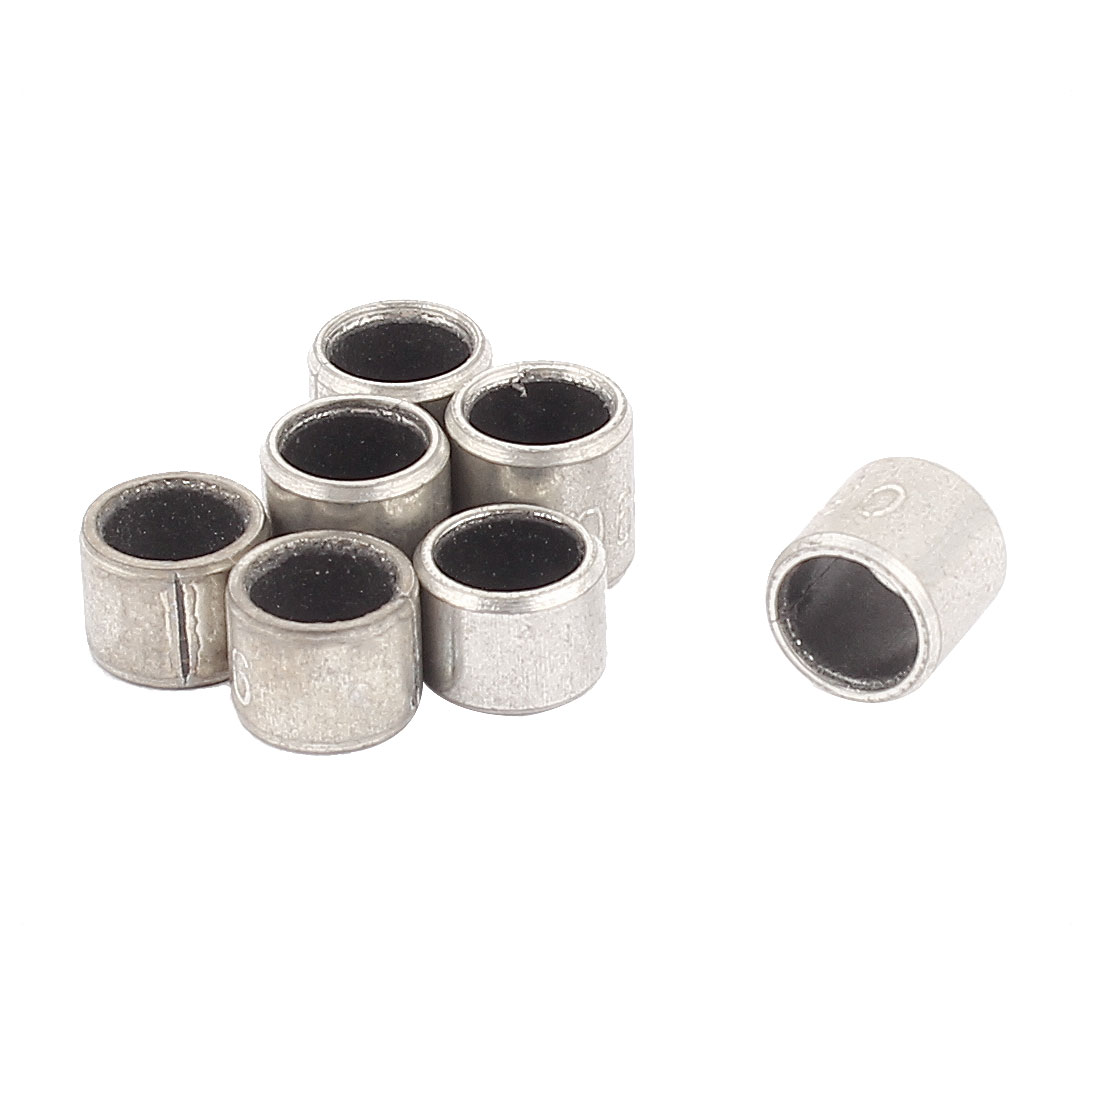 7 Pcs Self-lubricating Composite Bearing Bushing Sleeve 6mm x 8mm x 8mm